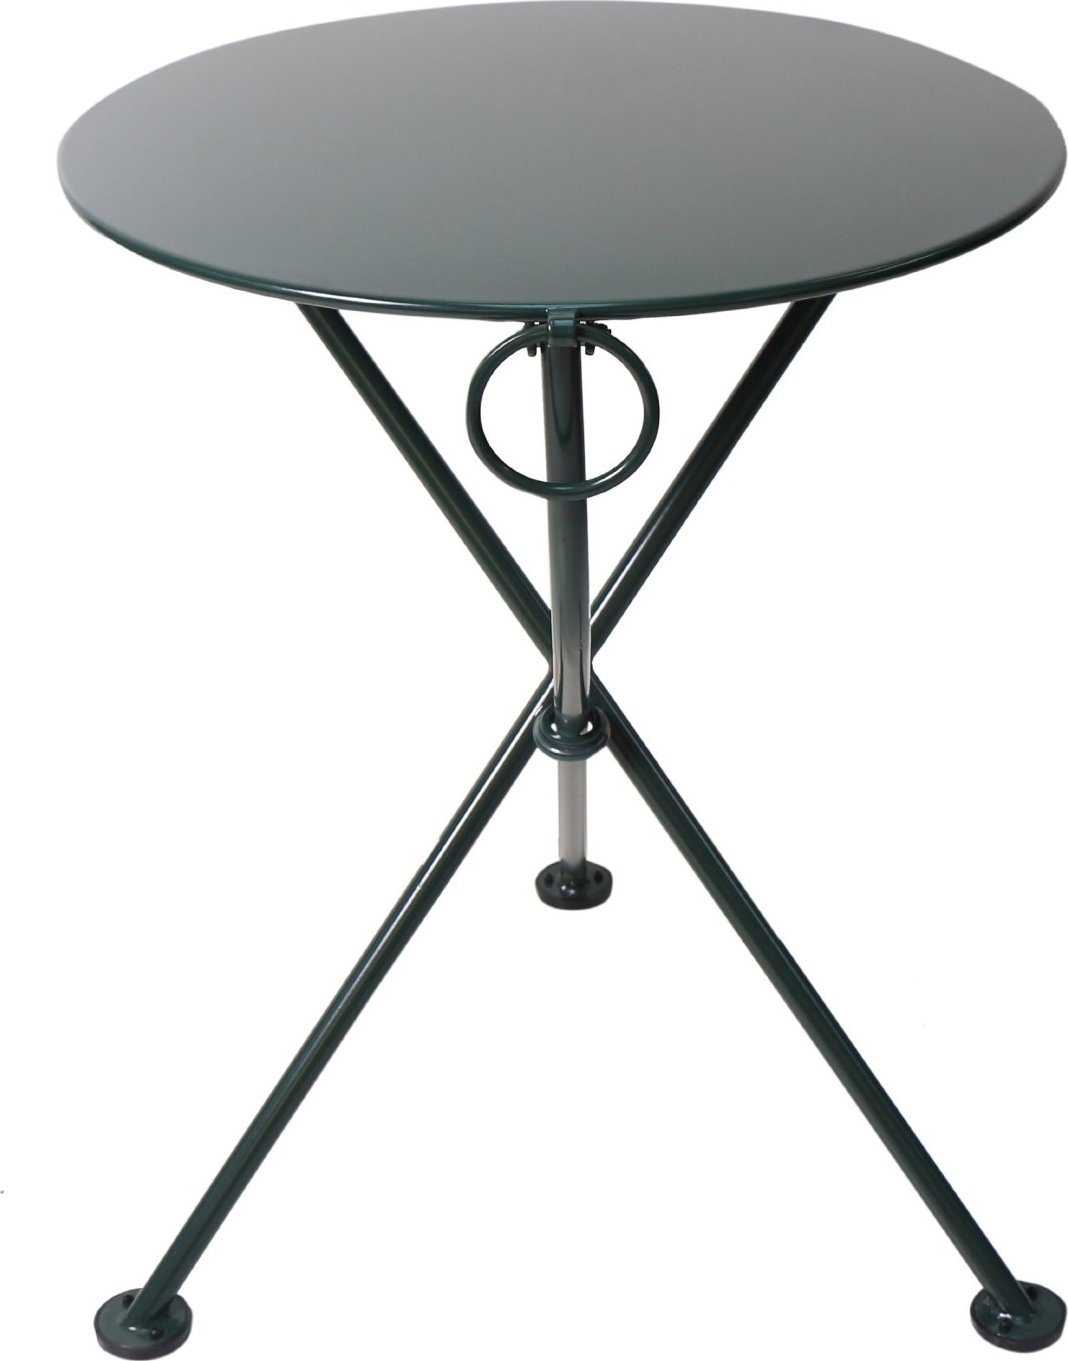 Furniture DesignHouse 28′ Round Folding Bistro Table